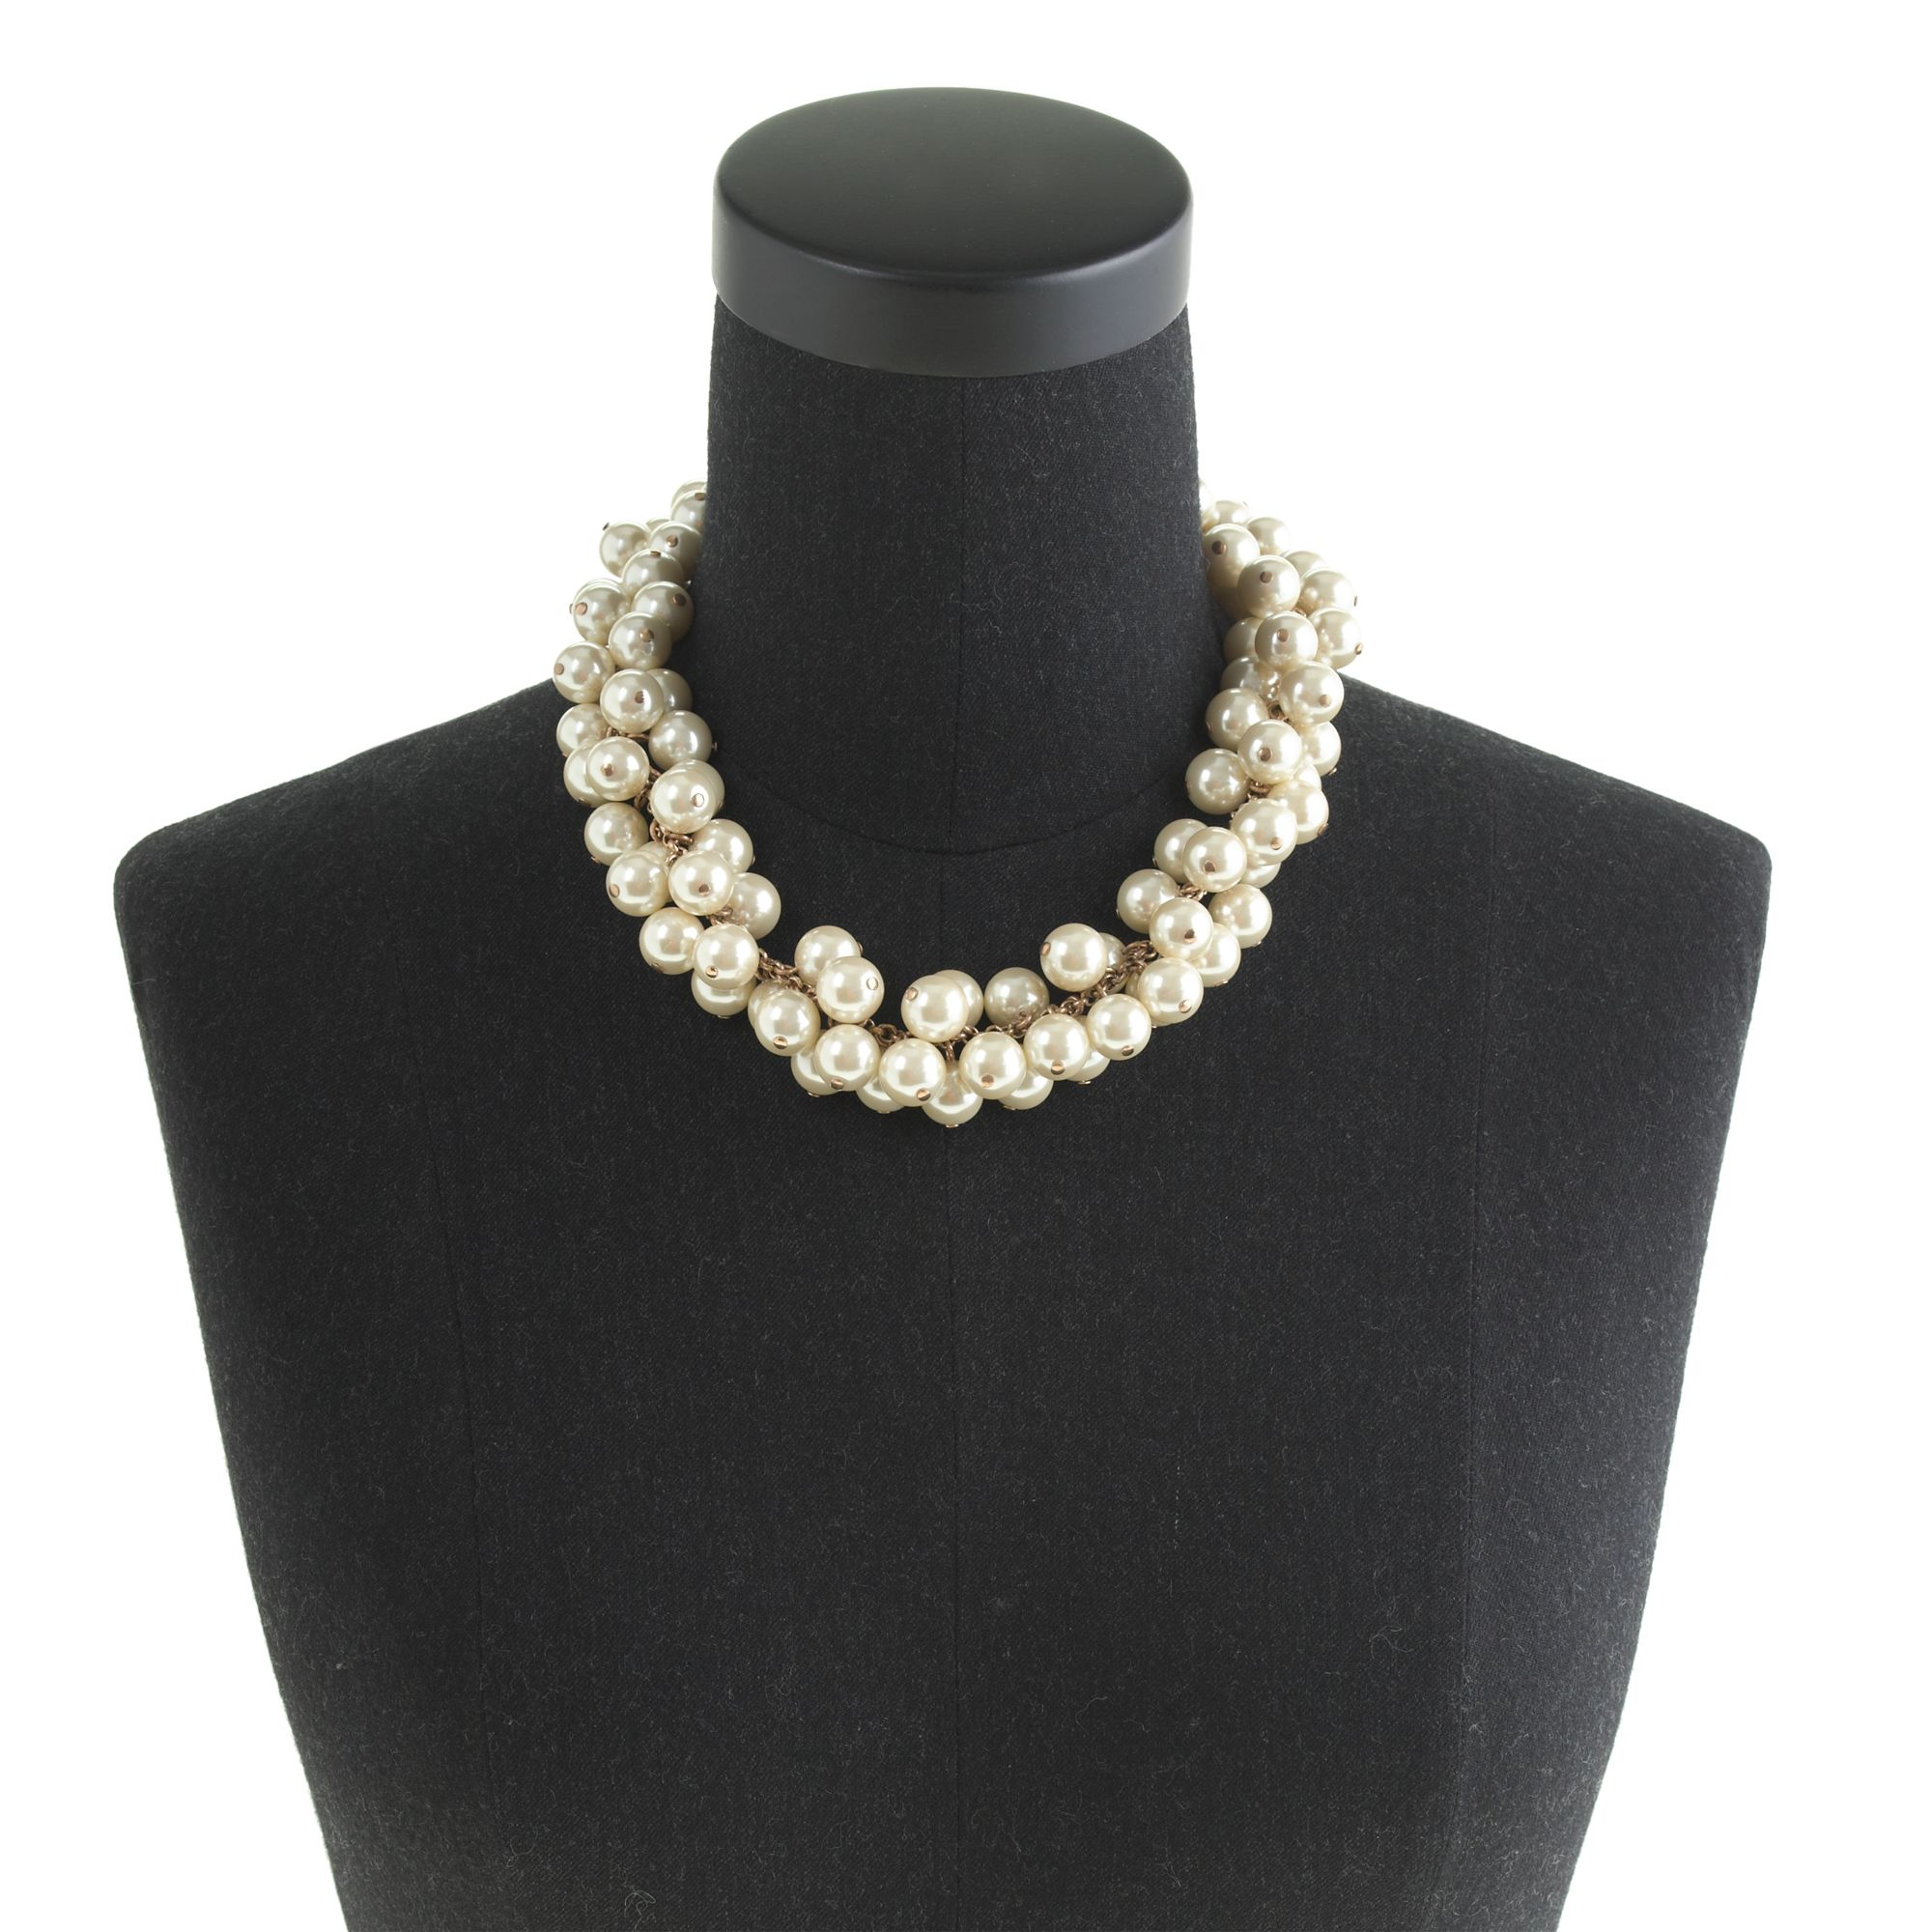 J.Crew Pearl Cluster Necklace in White